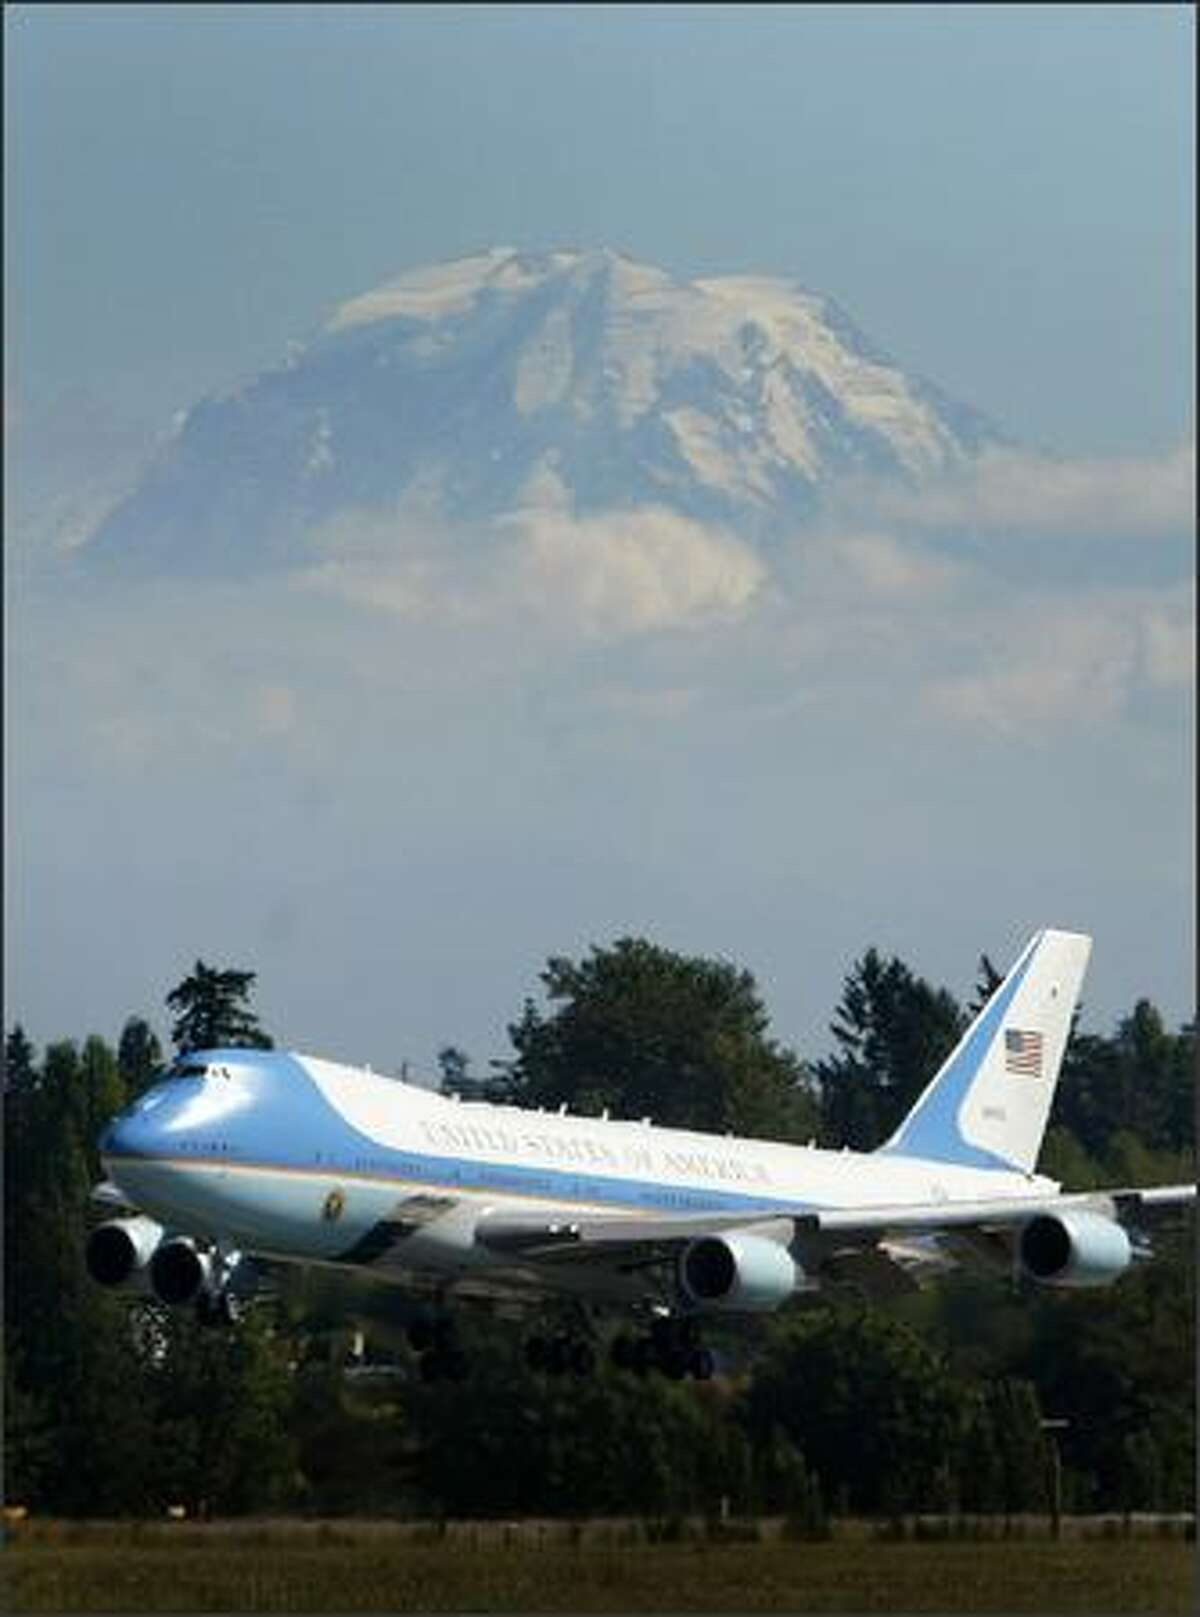 Air Force One arrives at SeaTac Airport on Monday, August 27, 2007 as Mt. Rainier towers in the background.